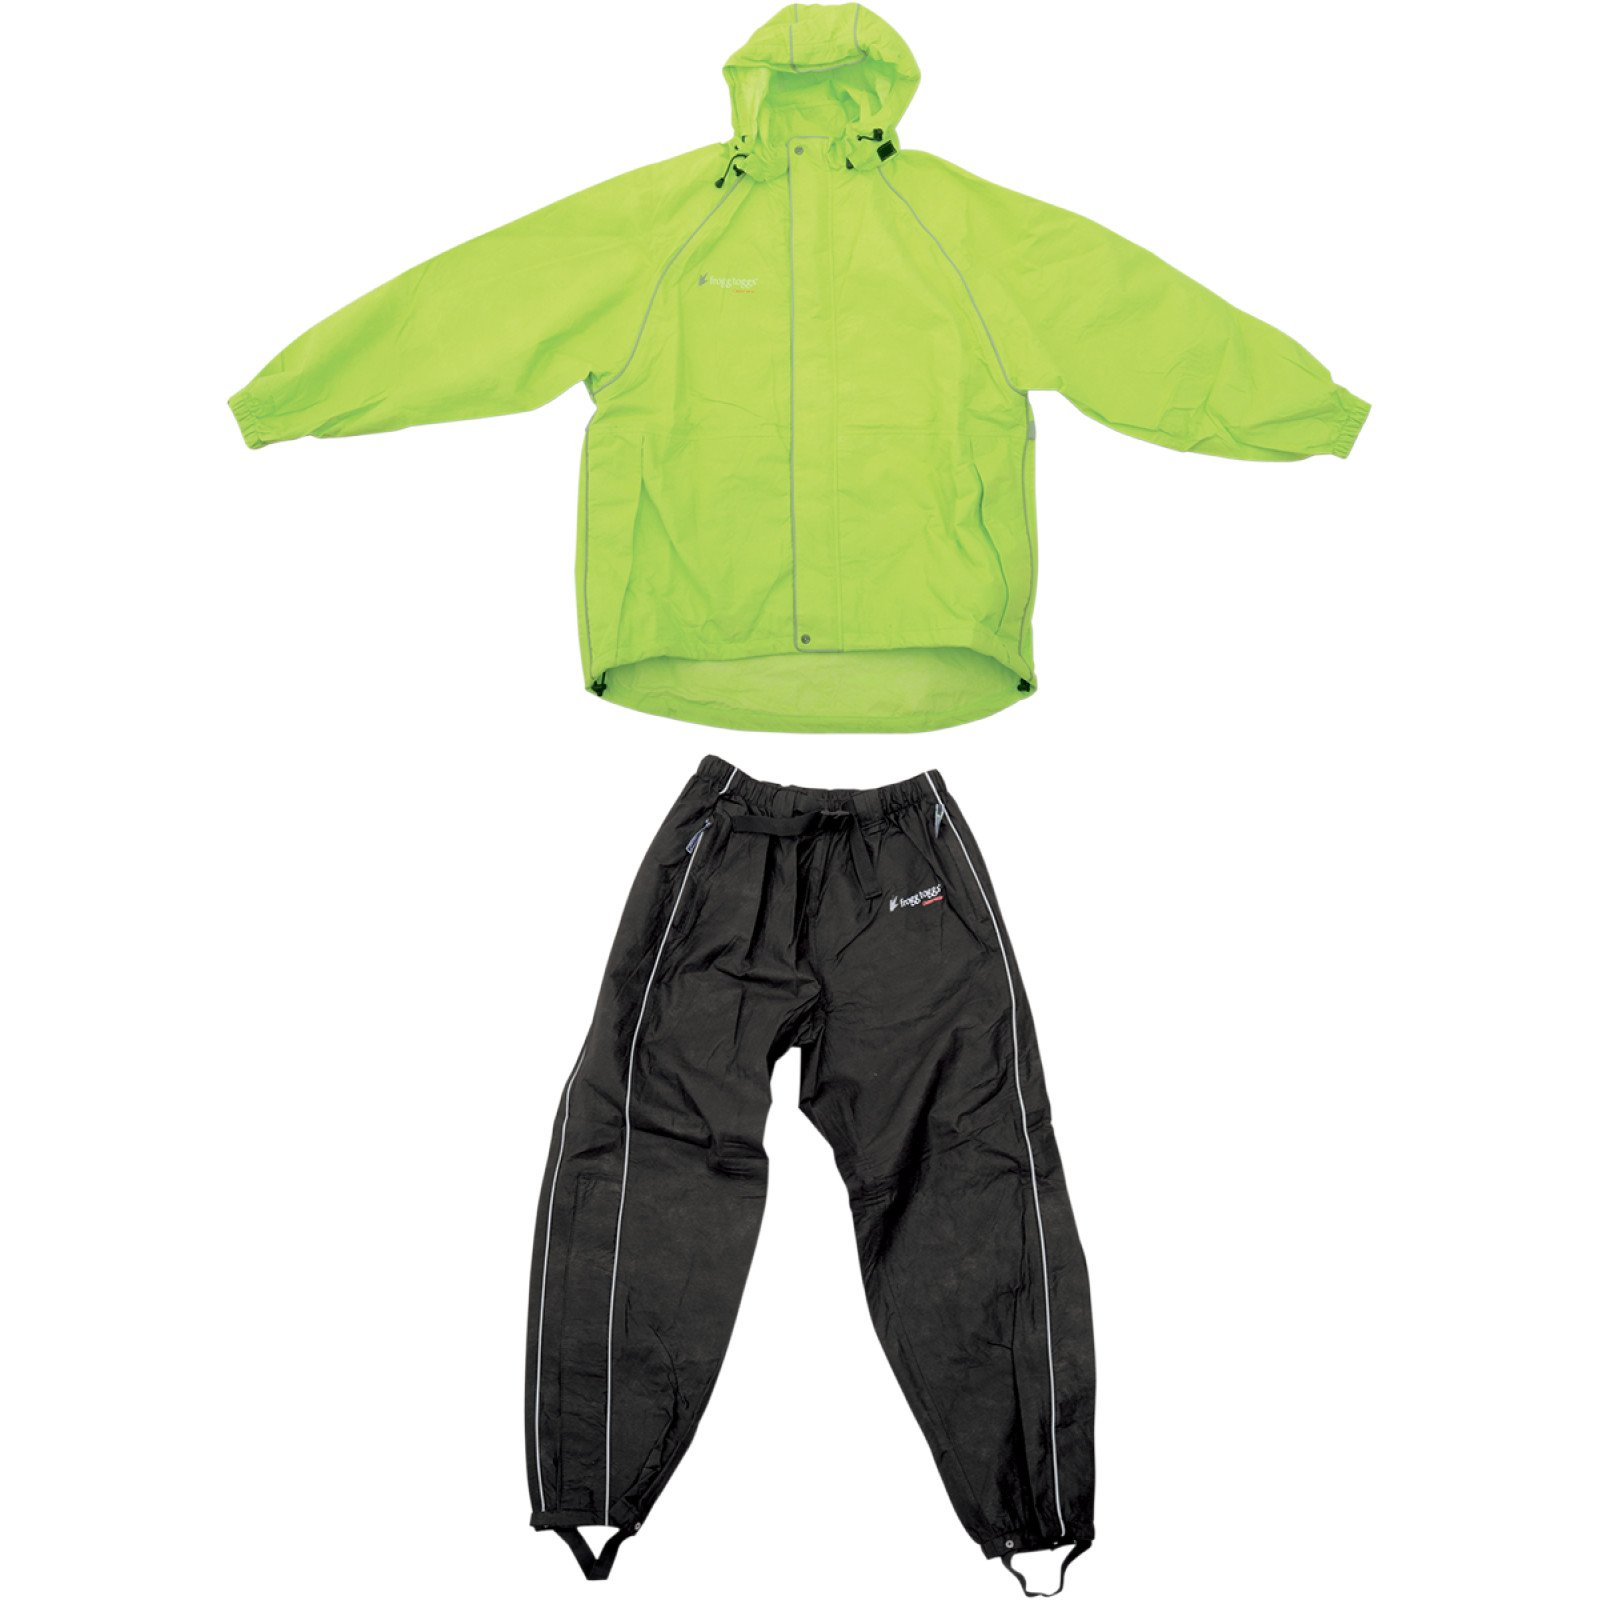 Frogg Toggs Men's High Visibility Cruisin Toggs Rainsuit (Green/Black, Medium)